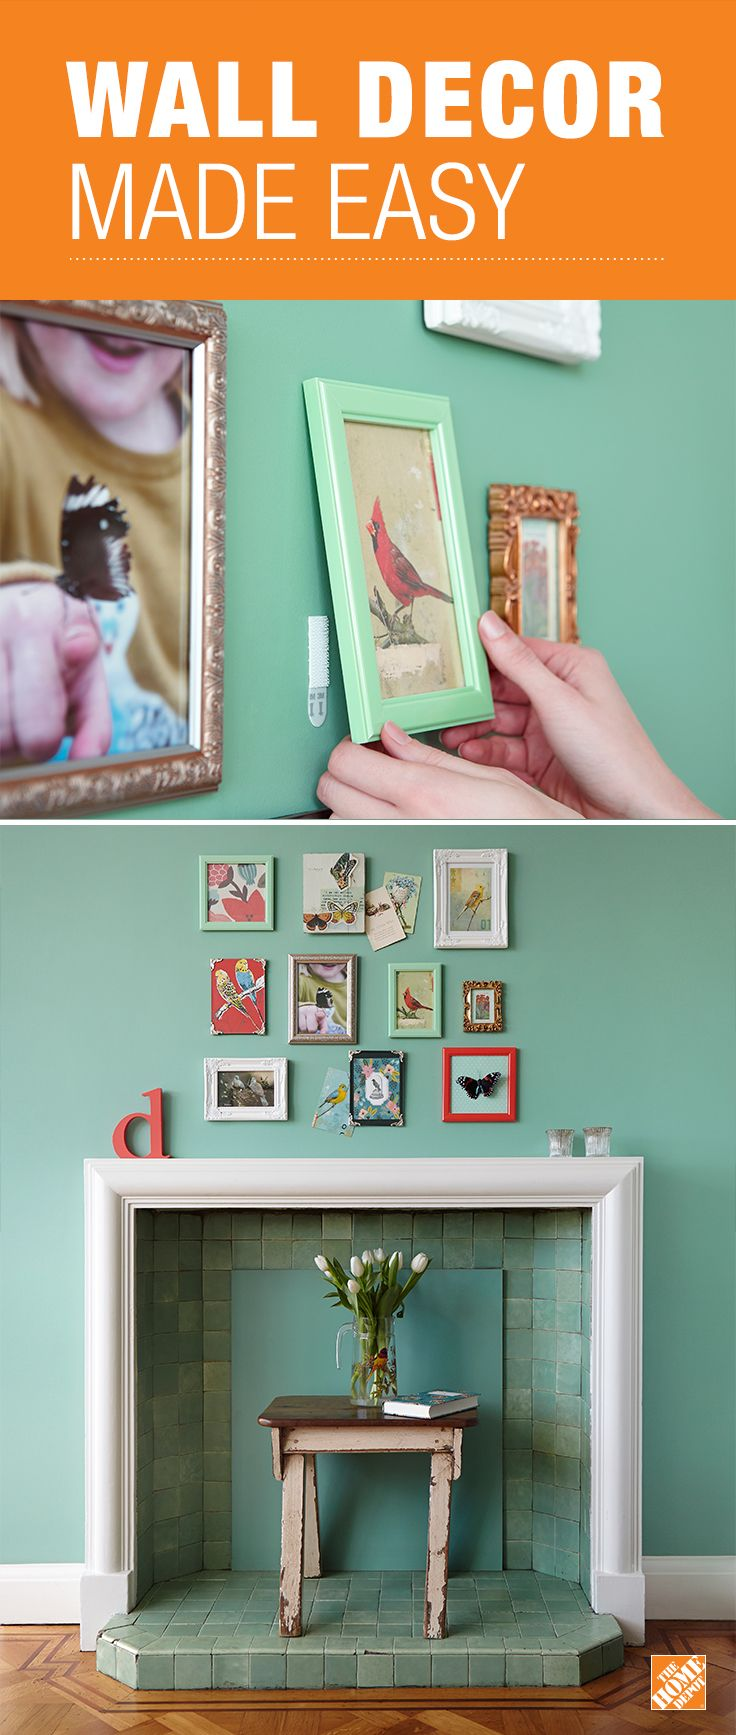 hang pictures without holes in wall